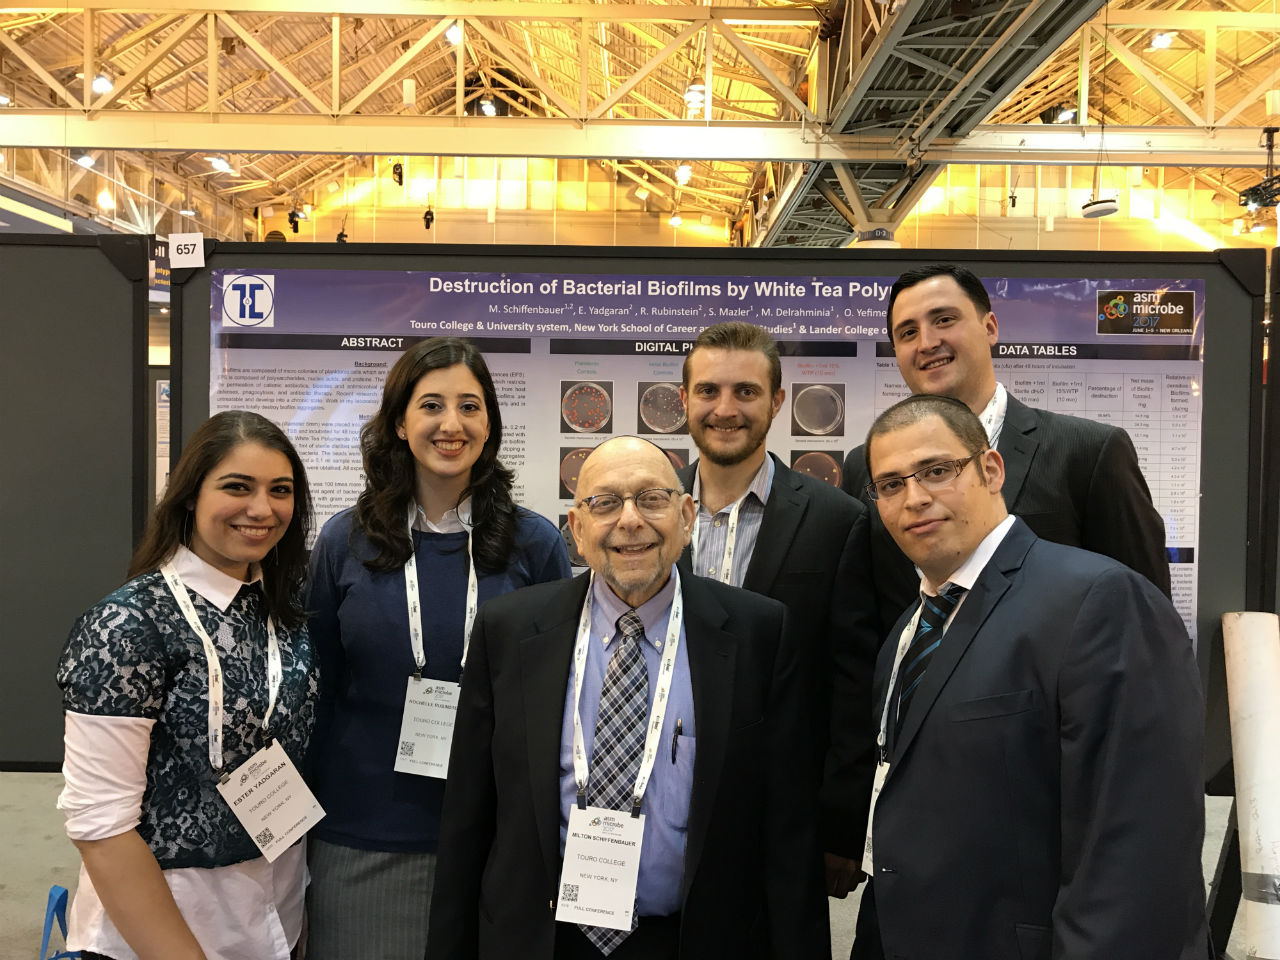 Dr. Milton Schiffenbauer and students at ASM. From left to right: Ester Yadgaran, Rochelle Rubinstein, Dr.  Milton Shciffenbauer, Oleg Yefimenko, Makan Delrahminia, Samuil Mazler